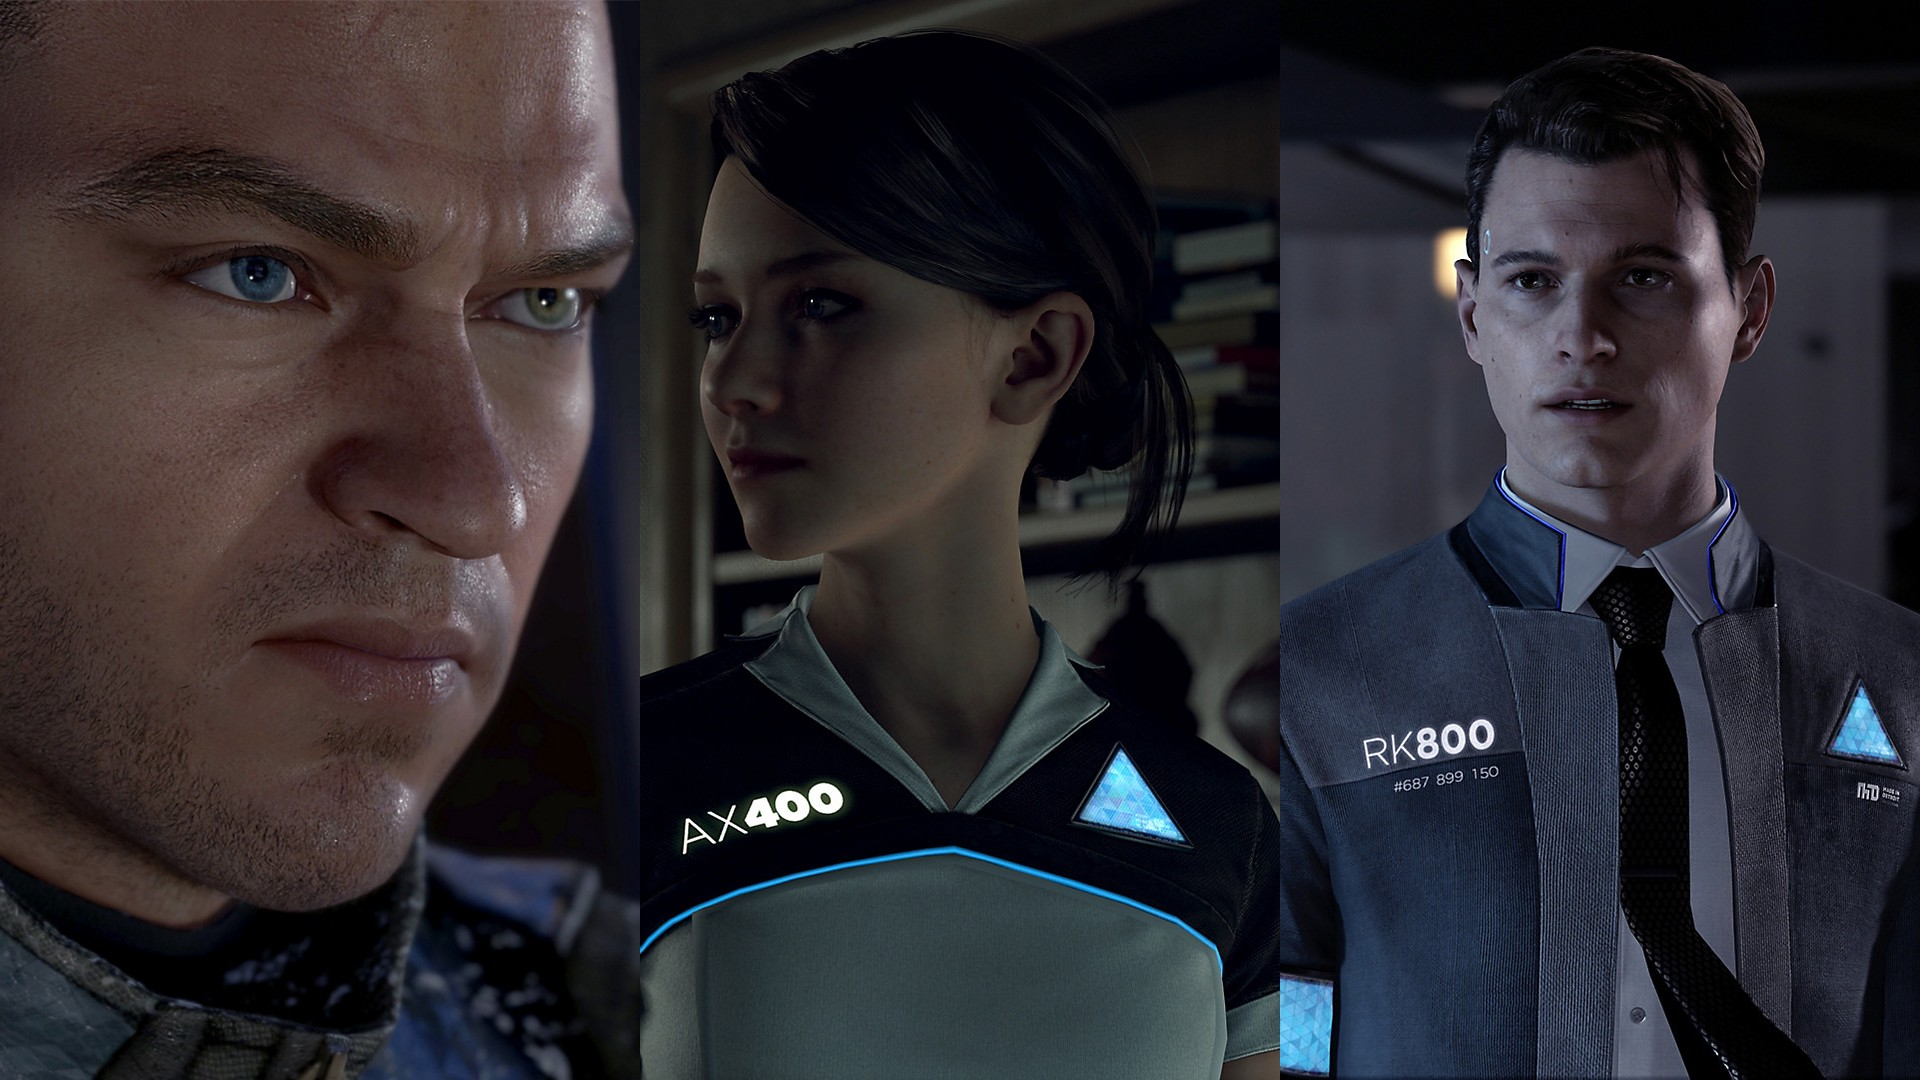 Detroit Become Human Is A Dissection Of The Political Spectrum